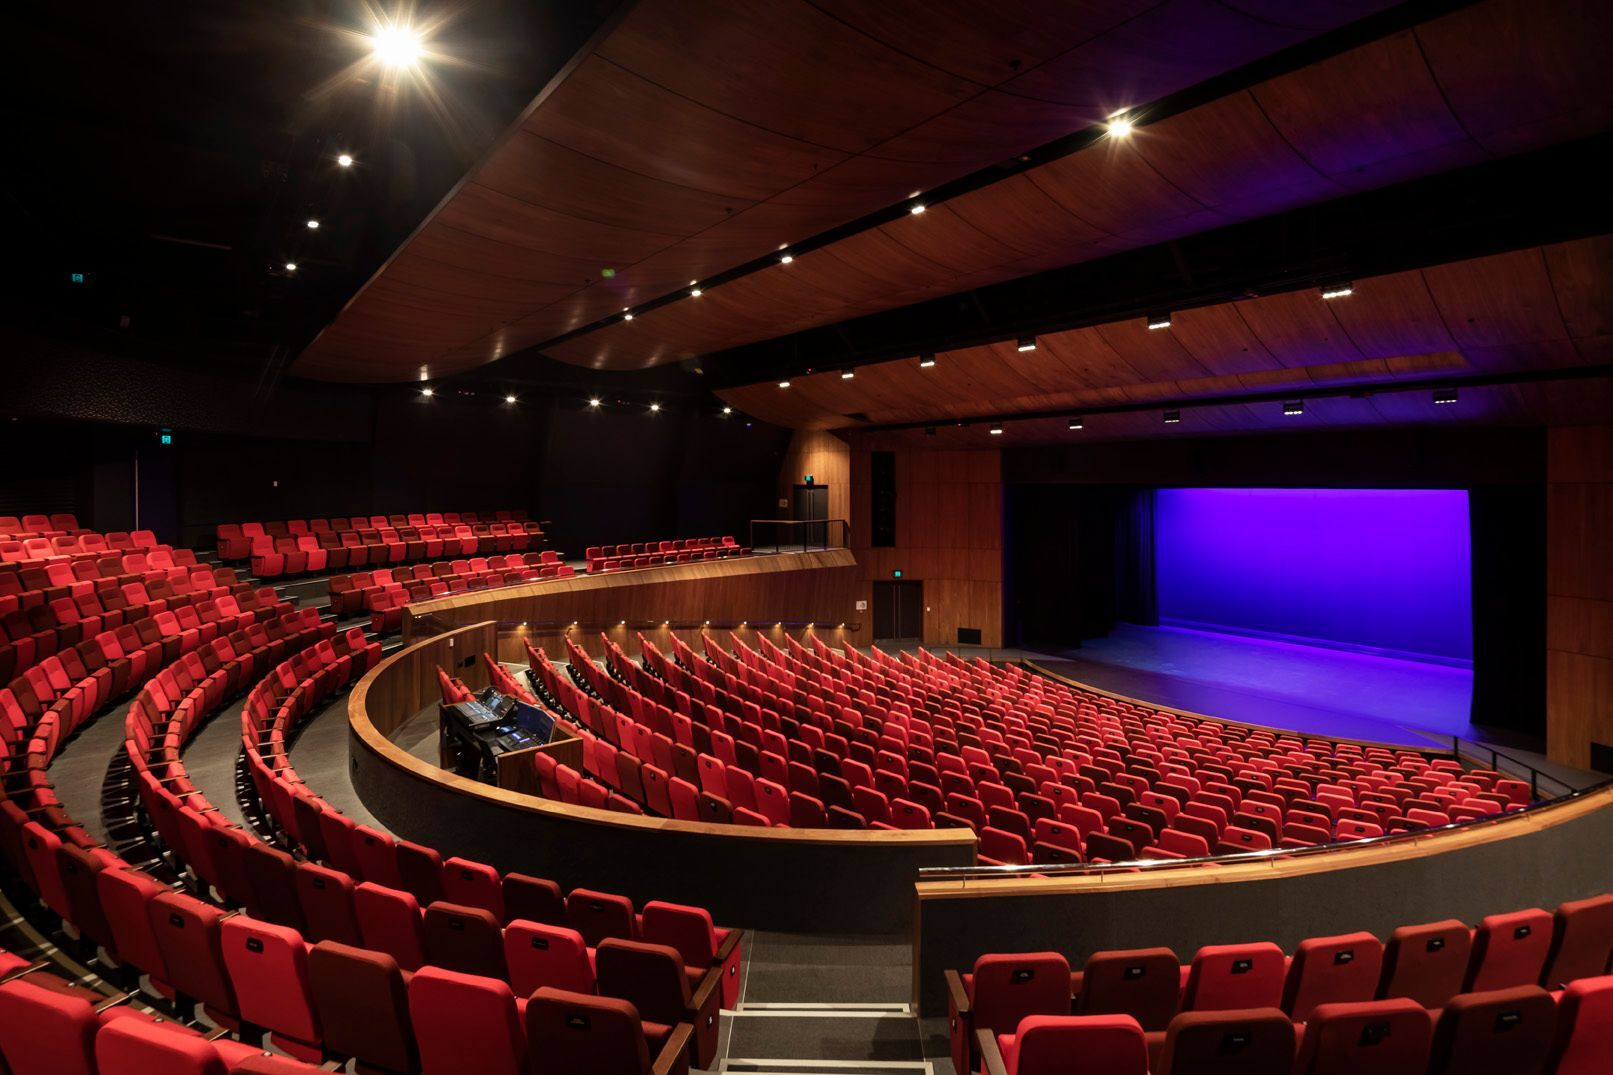 diocesan school for girls performing arts centre auditorium